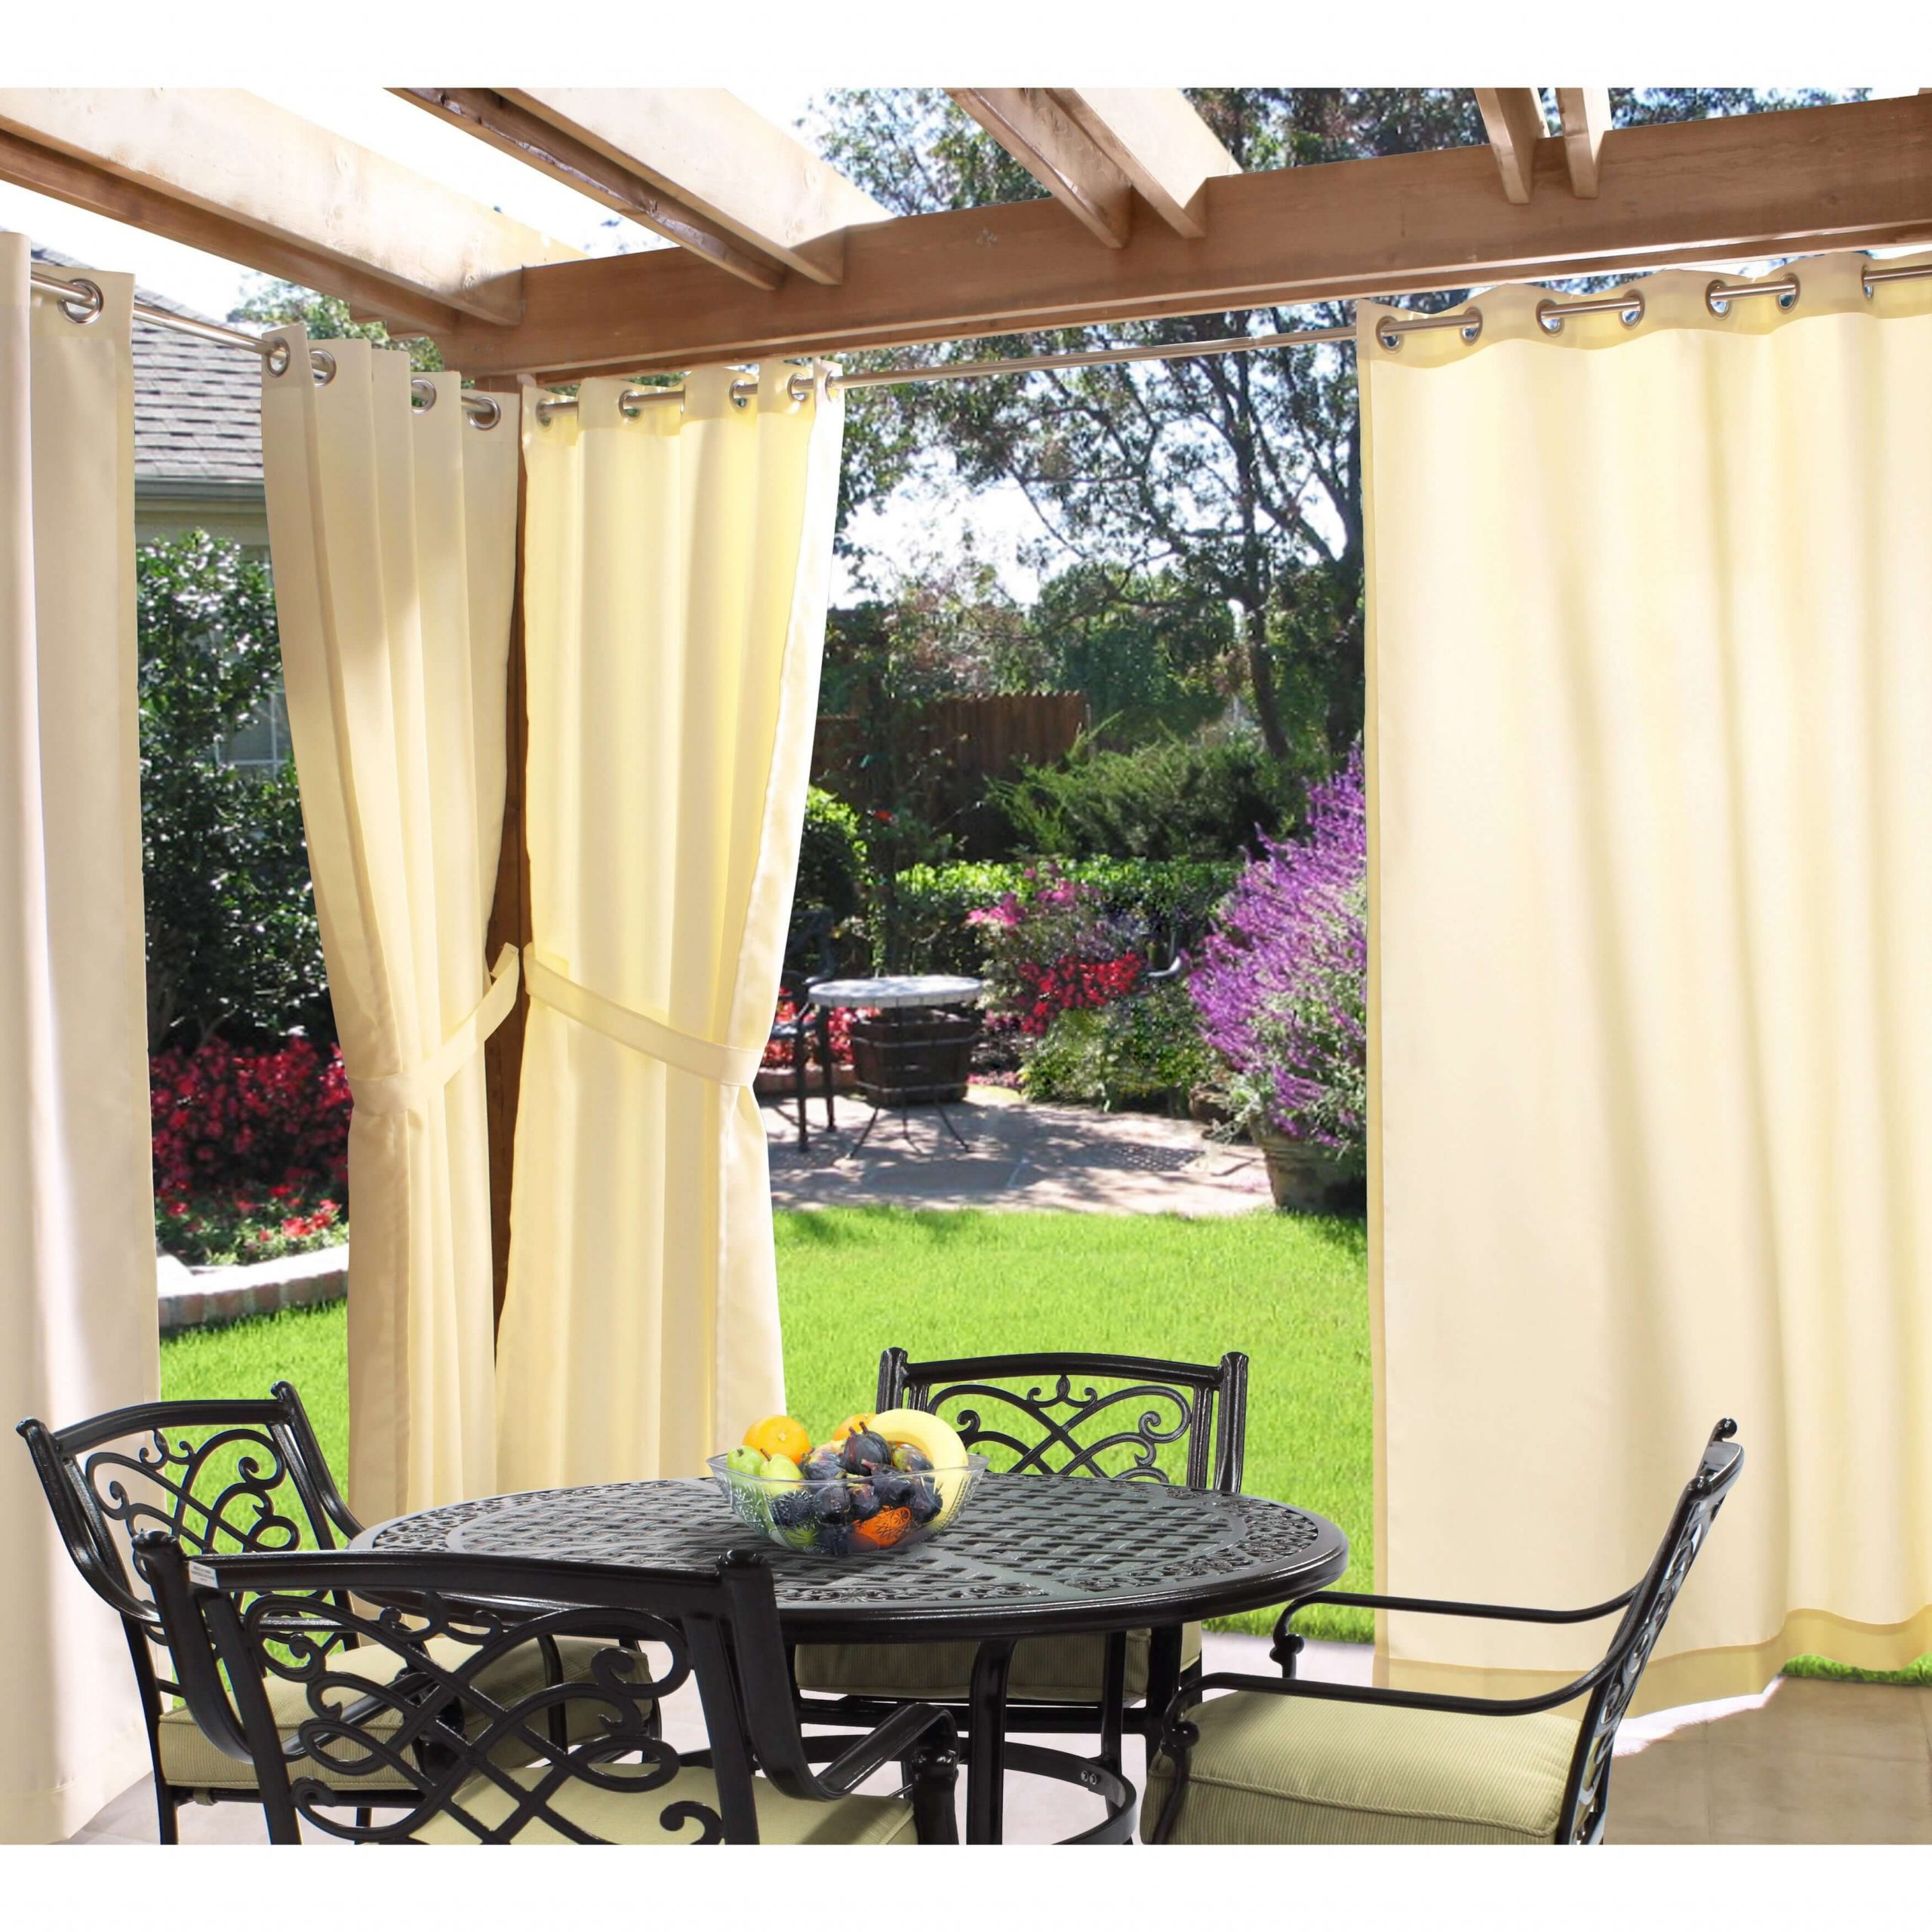 SUN SHADE FOR PATIO WITH CURTAINS